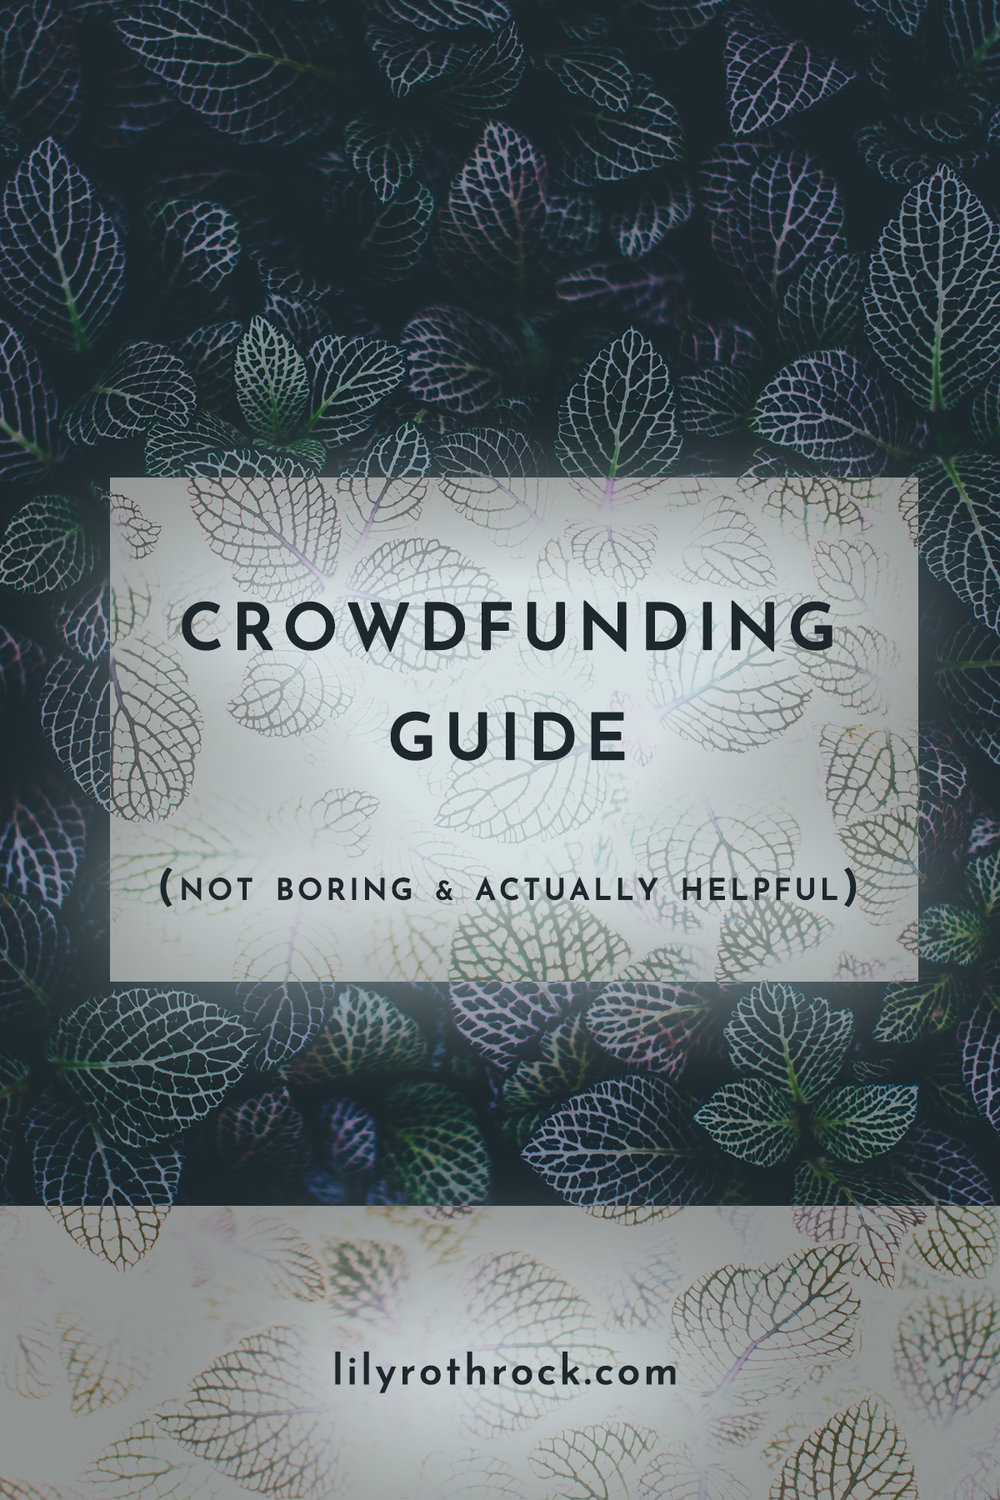 crowdfunding guide.jpg